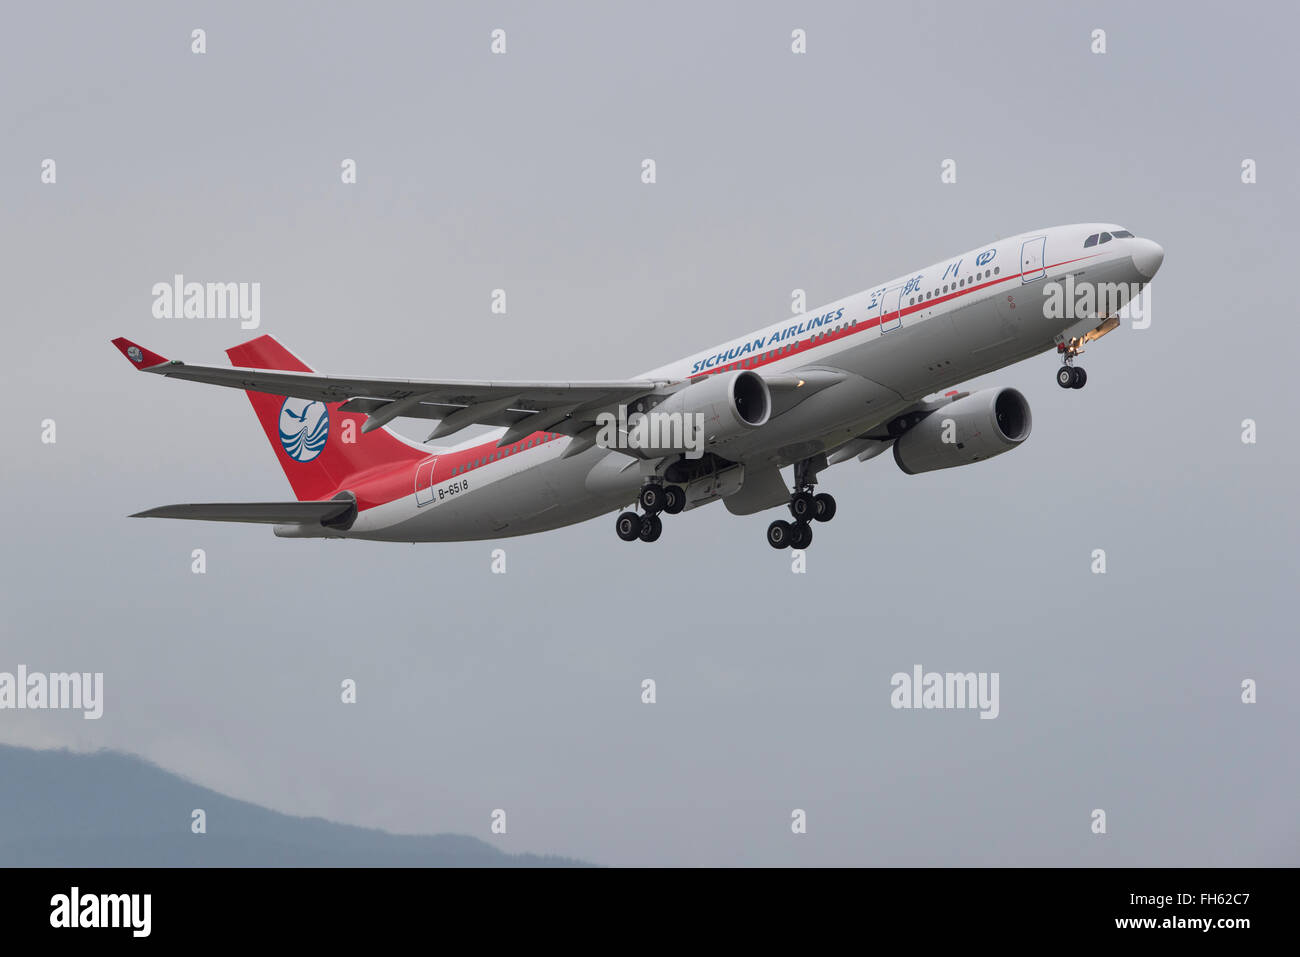 Sichuan Airlines Airbus A330-200 in air after taken off. - Stock Image